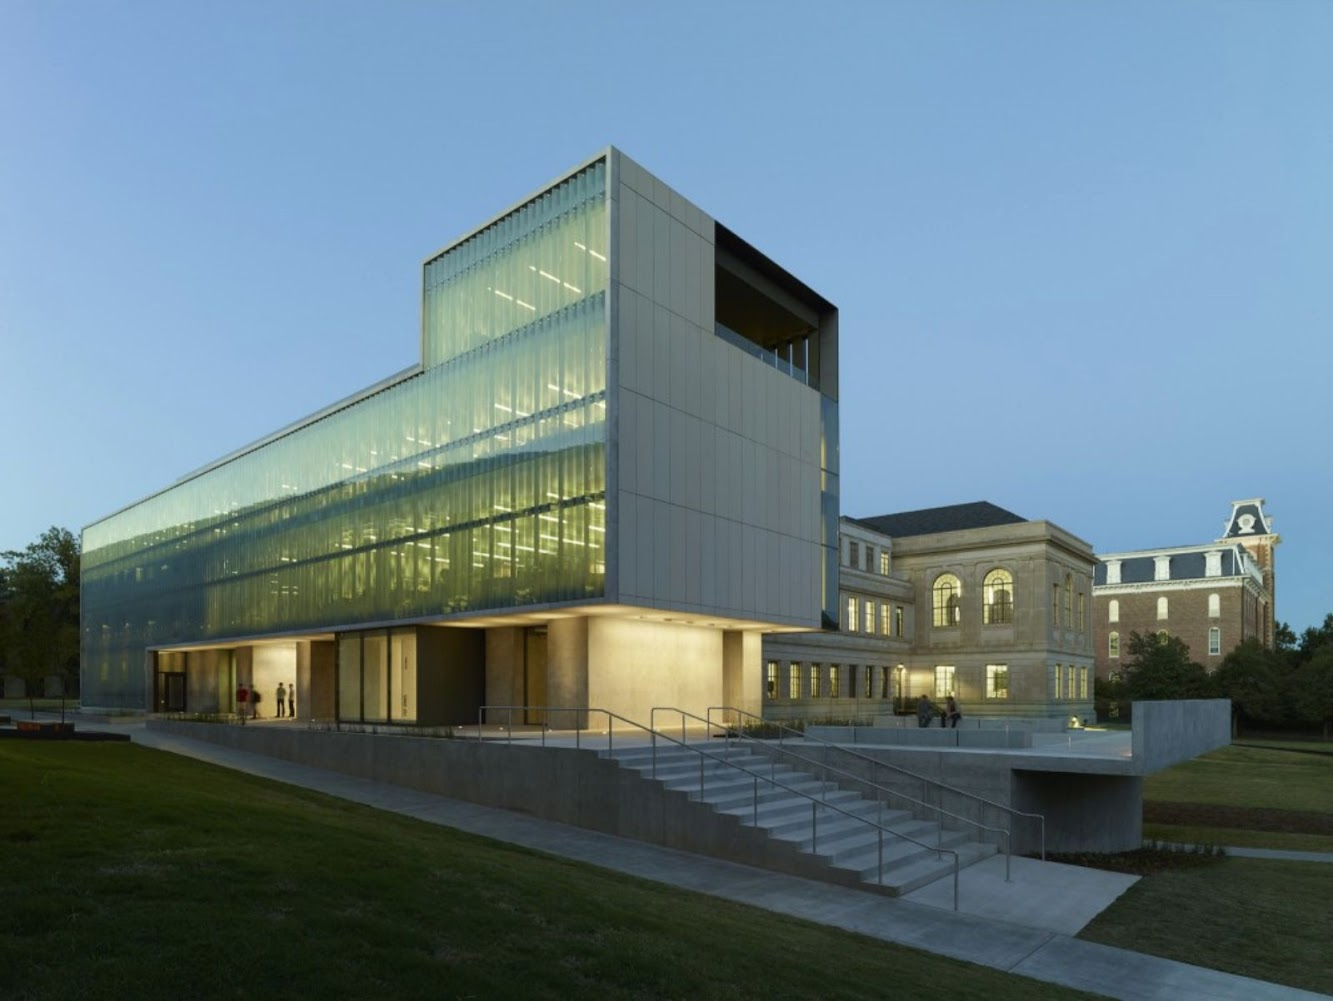 University: STEVEN L ANDERSON DESIGN CENTER by MARLON BLACKWELL ARCHITECT